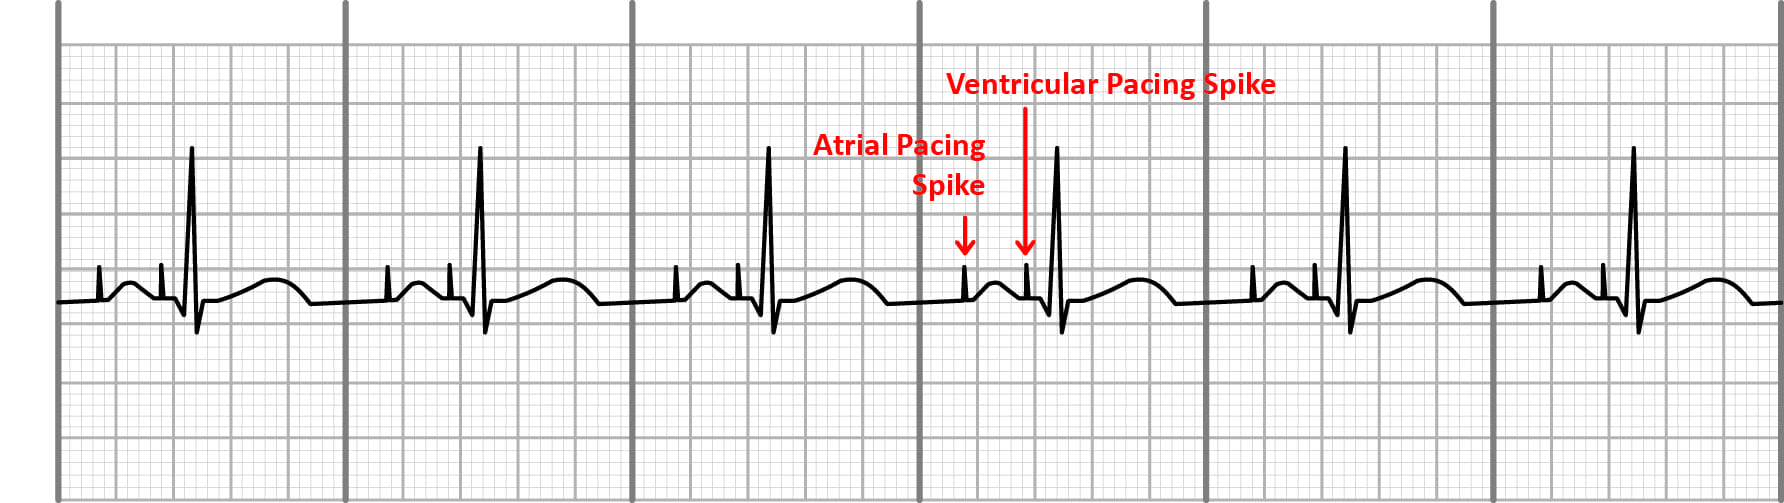 Atrial and ventricular pacing on an EKG